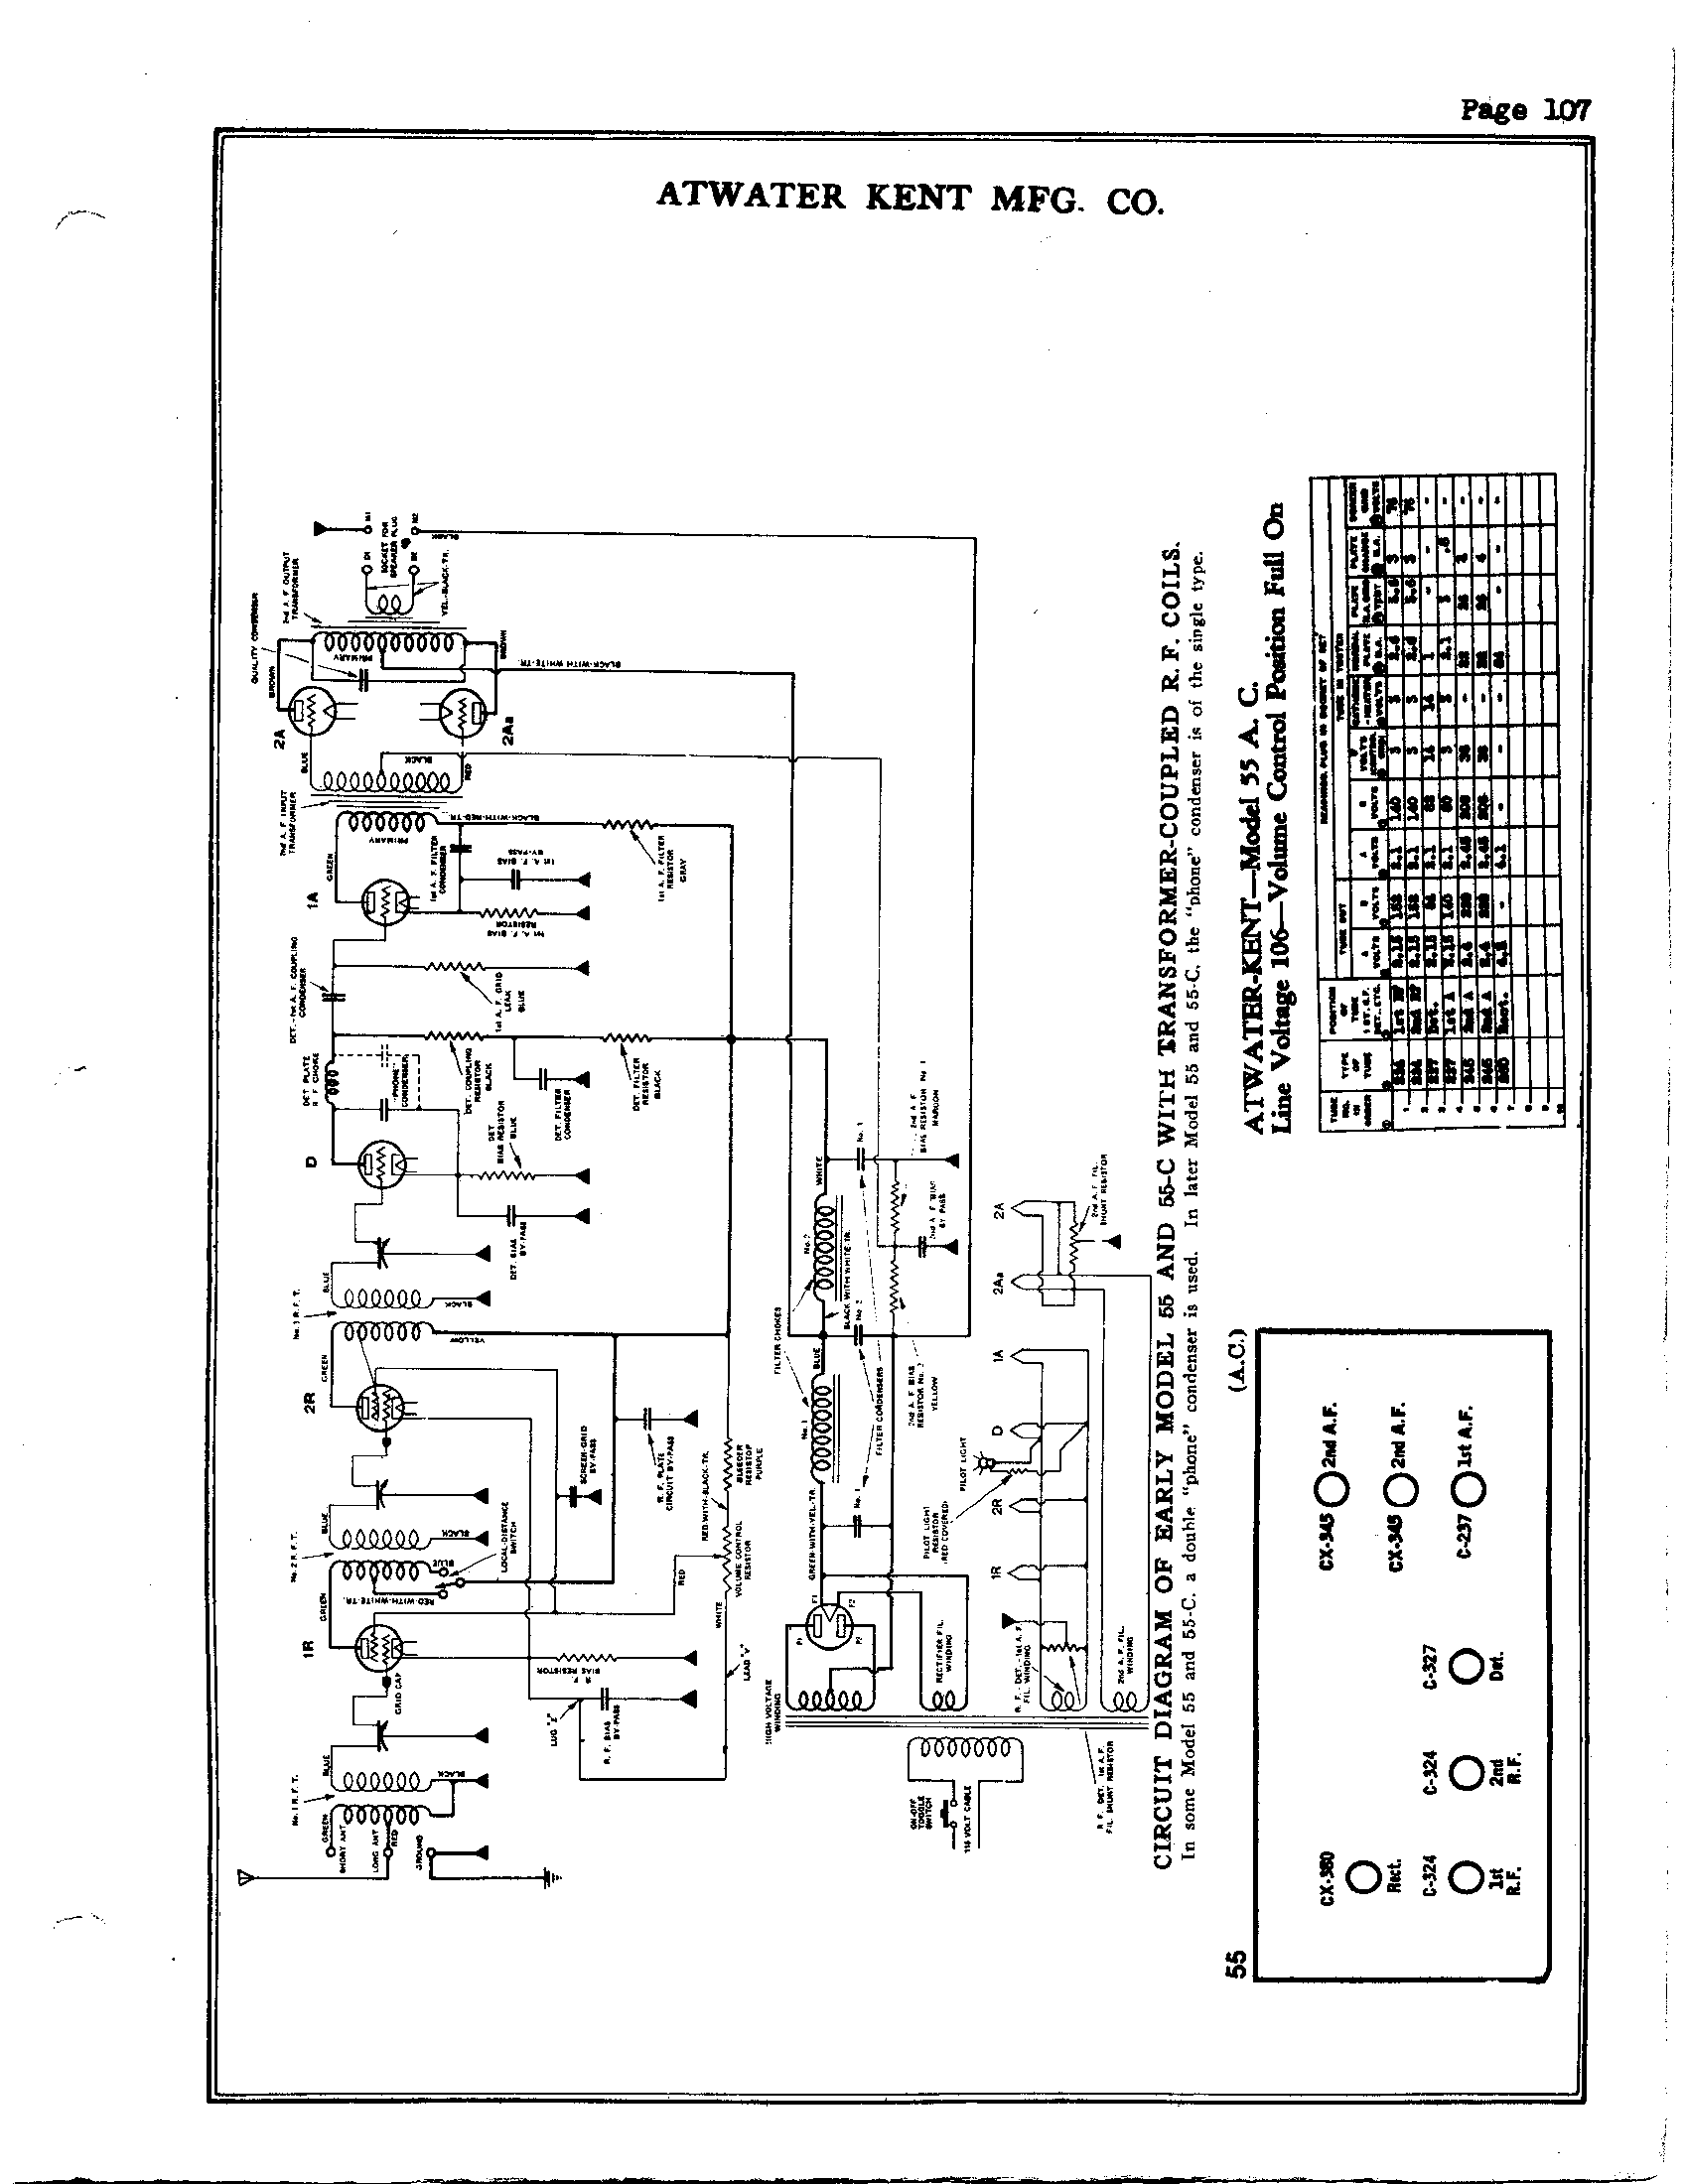 Asv Wiring Diagram - Fram Fuel Filter Element for Wiring Diagram SchematicsWiring Diagram Schematics